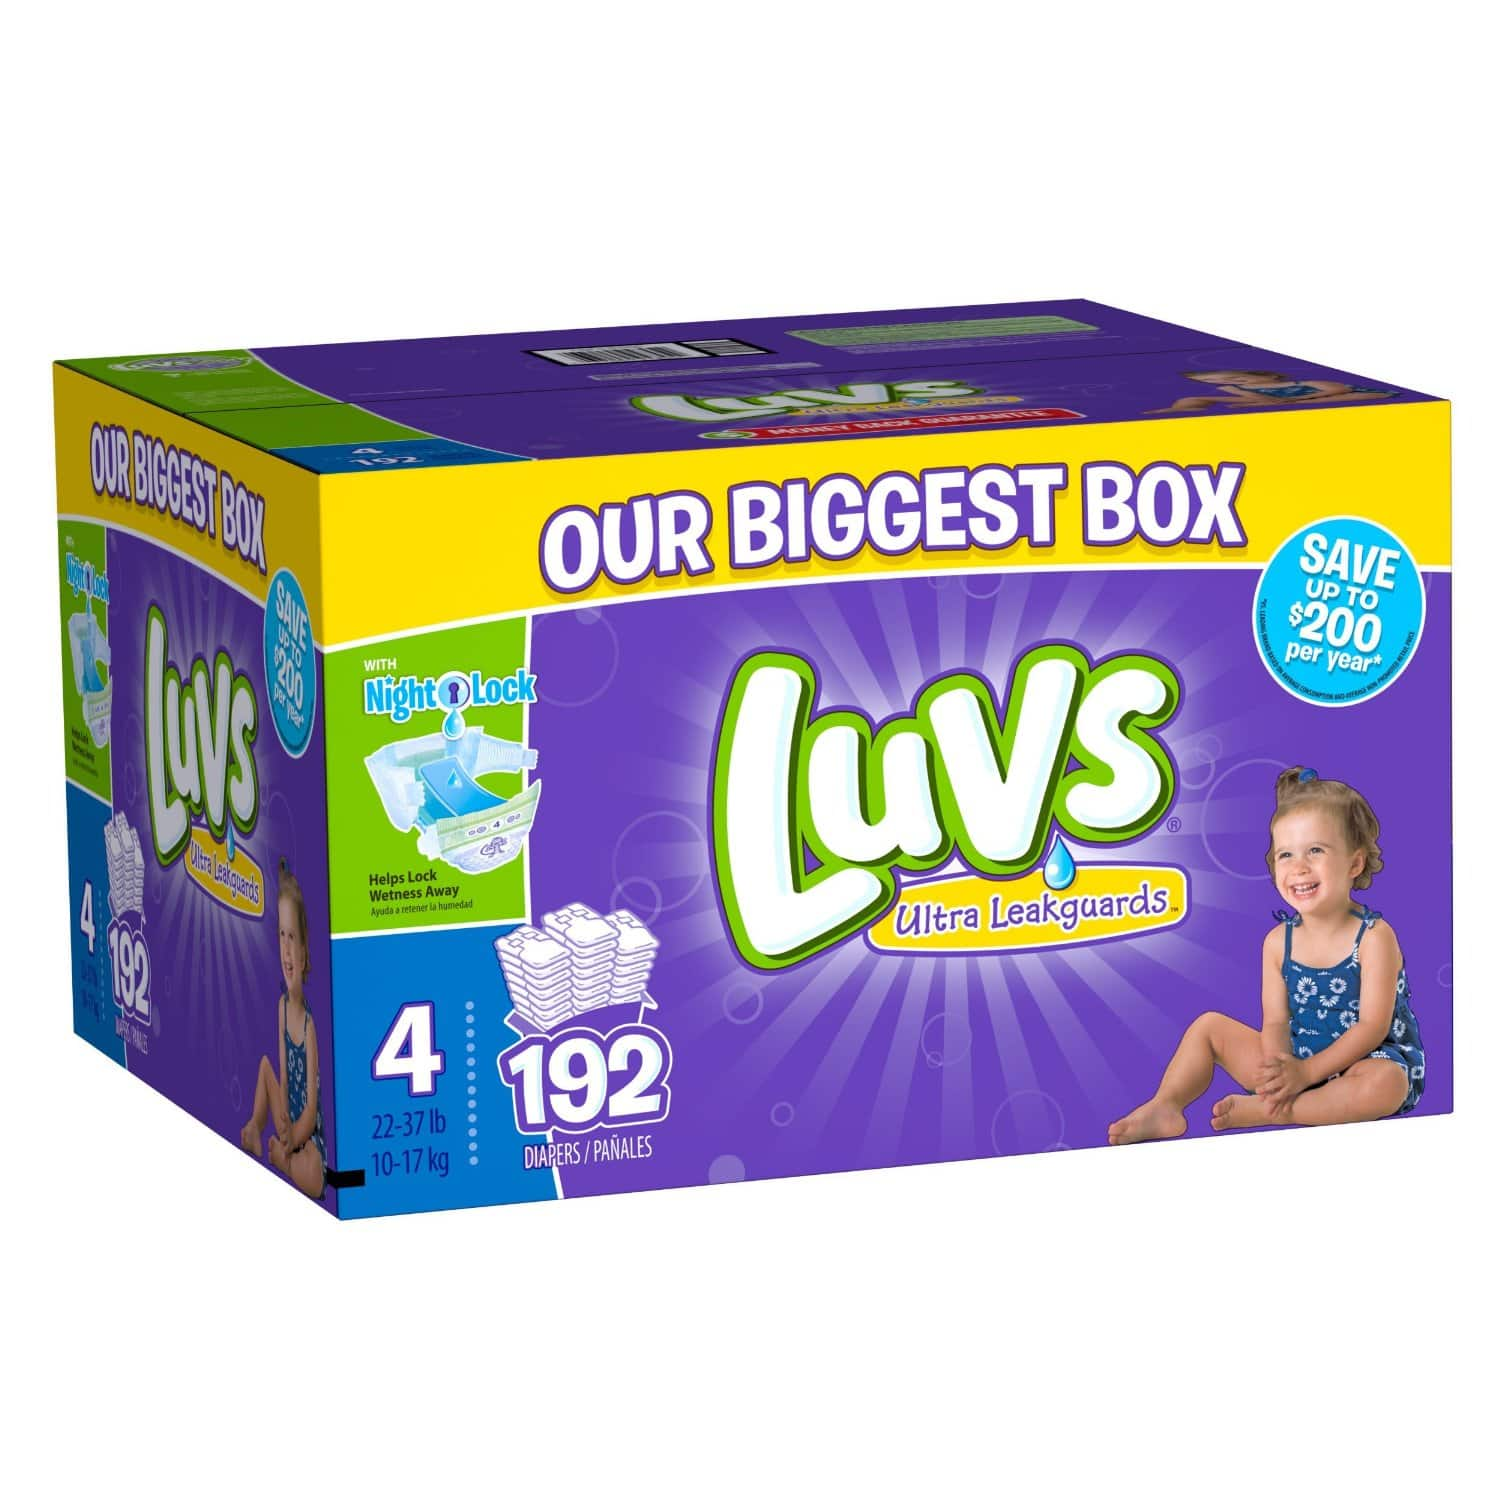 Luvs Diapers, Size 4, 192 Count at Amazon $23.13. Free Shipping with Prime